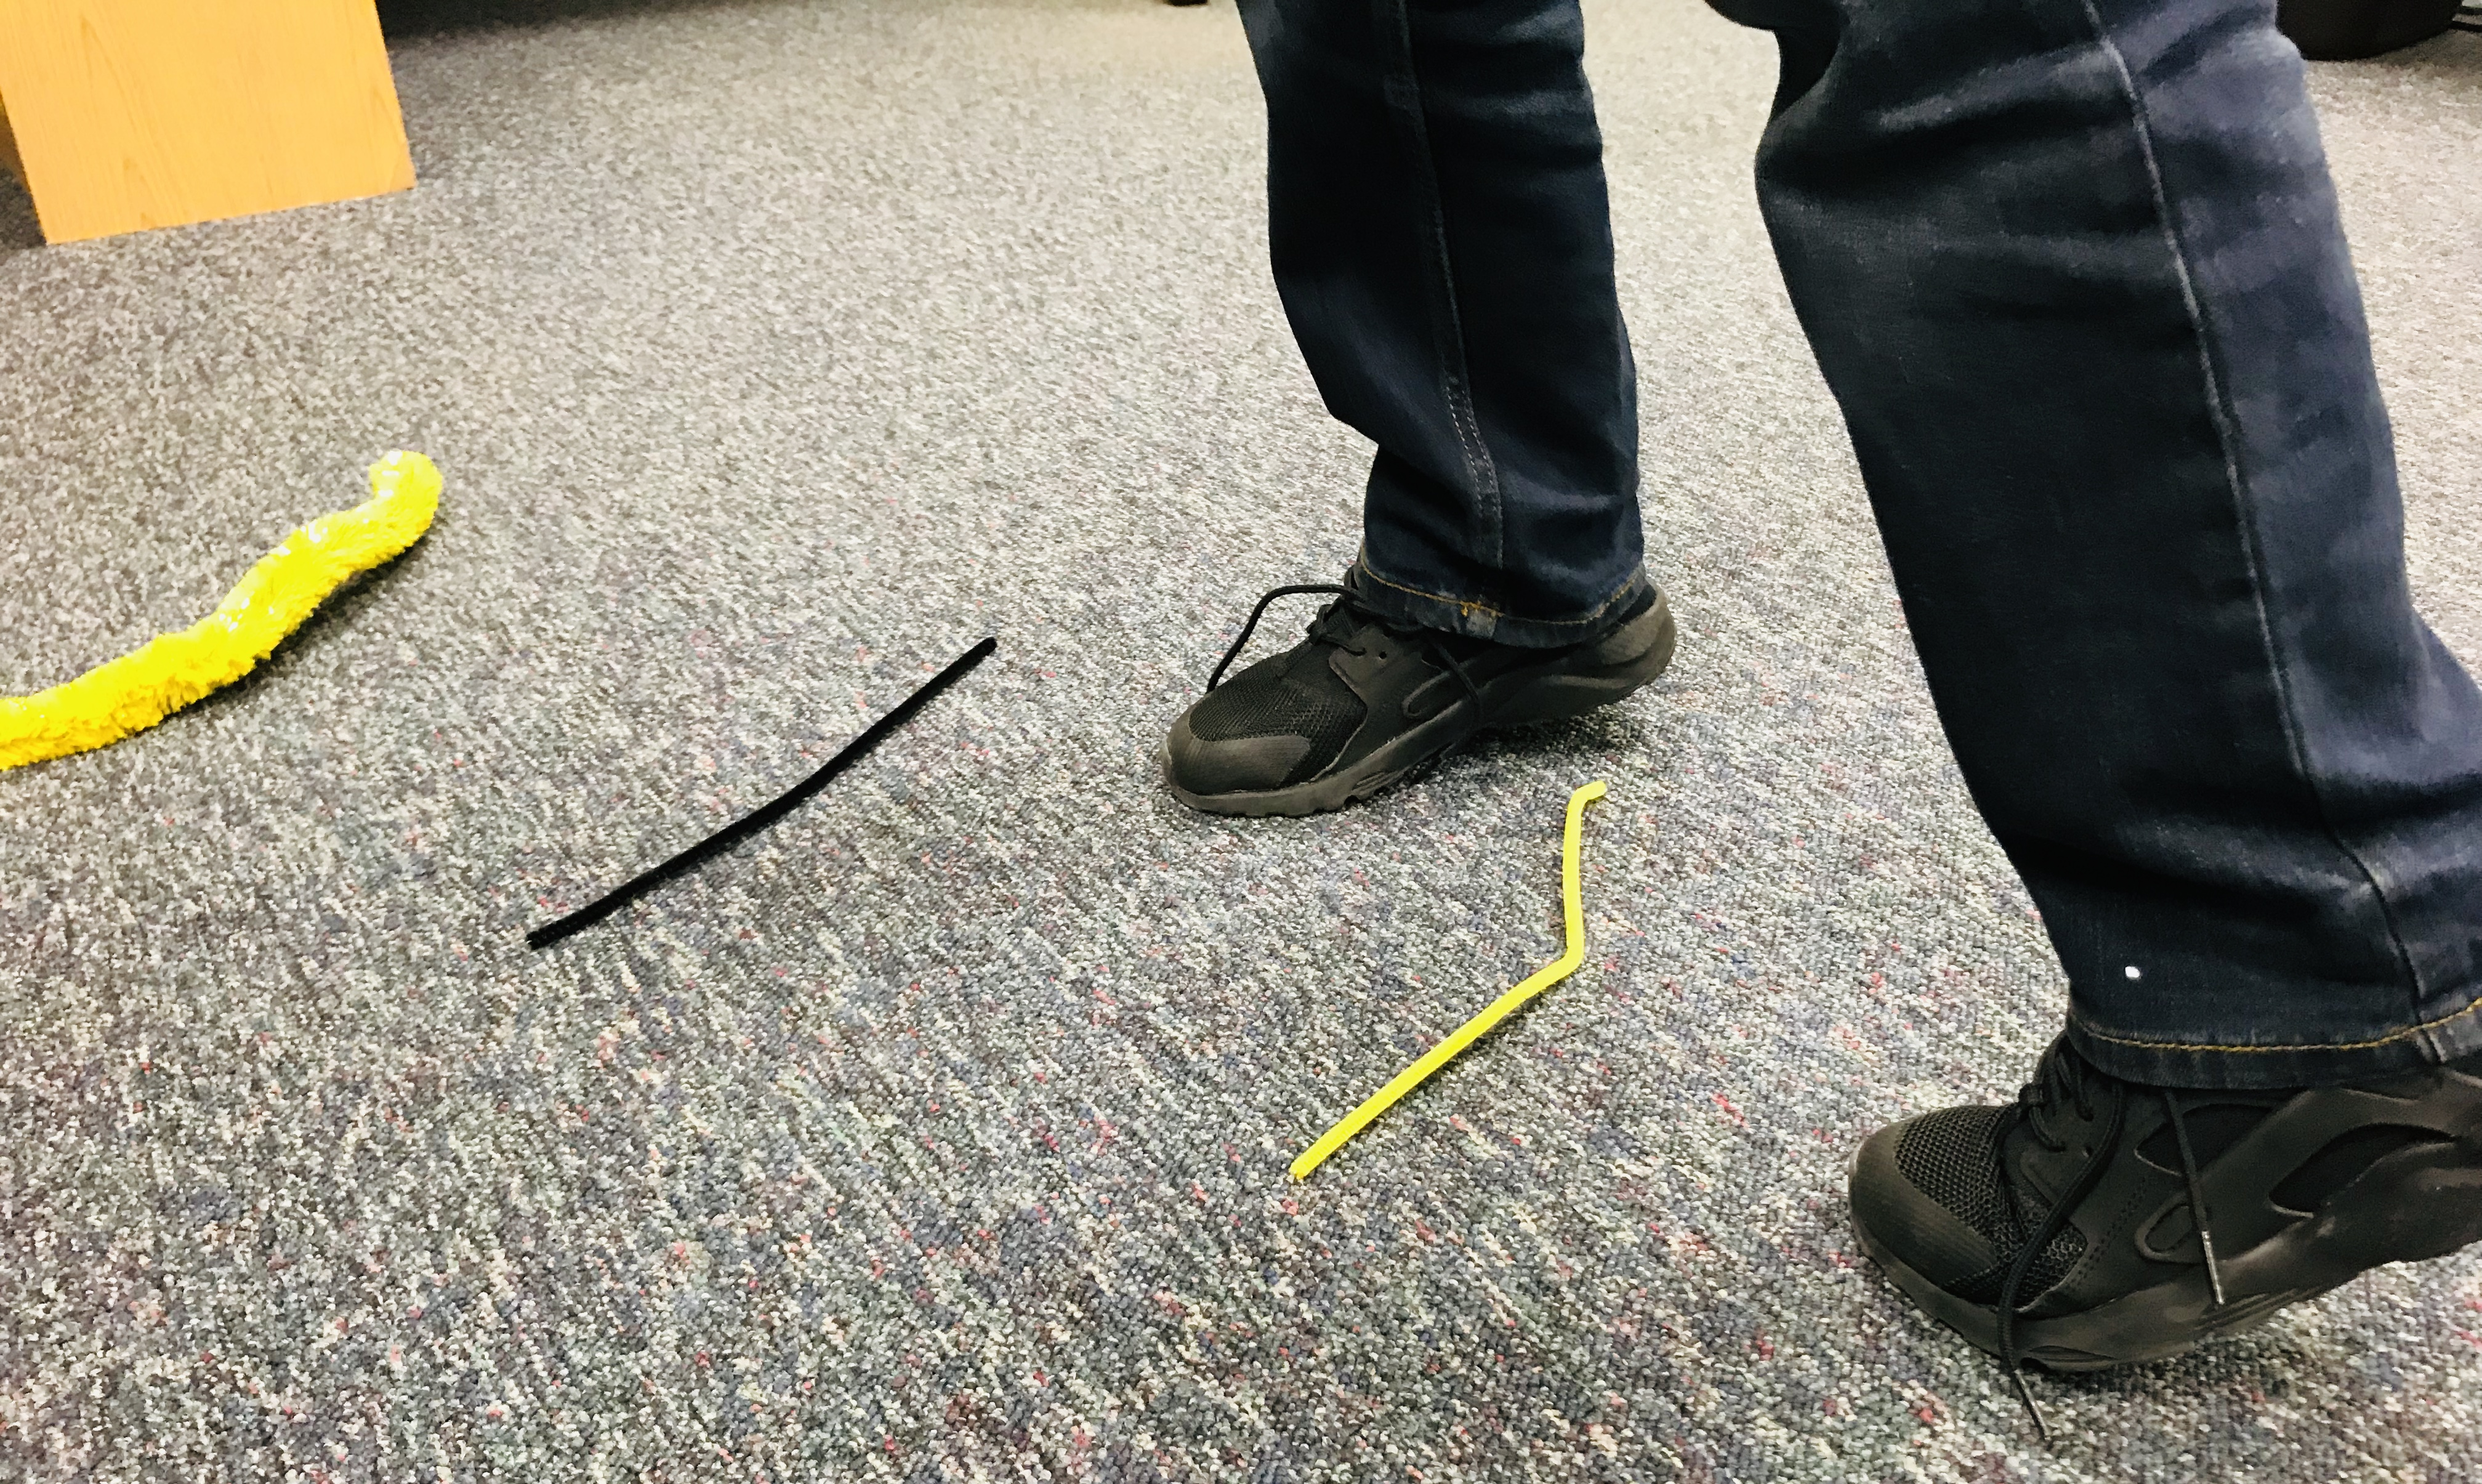 Tip toe over pipe cleaning stems